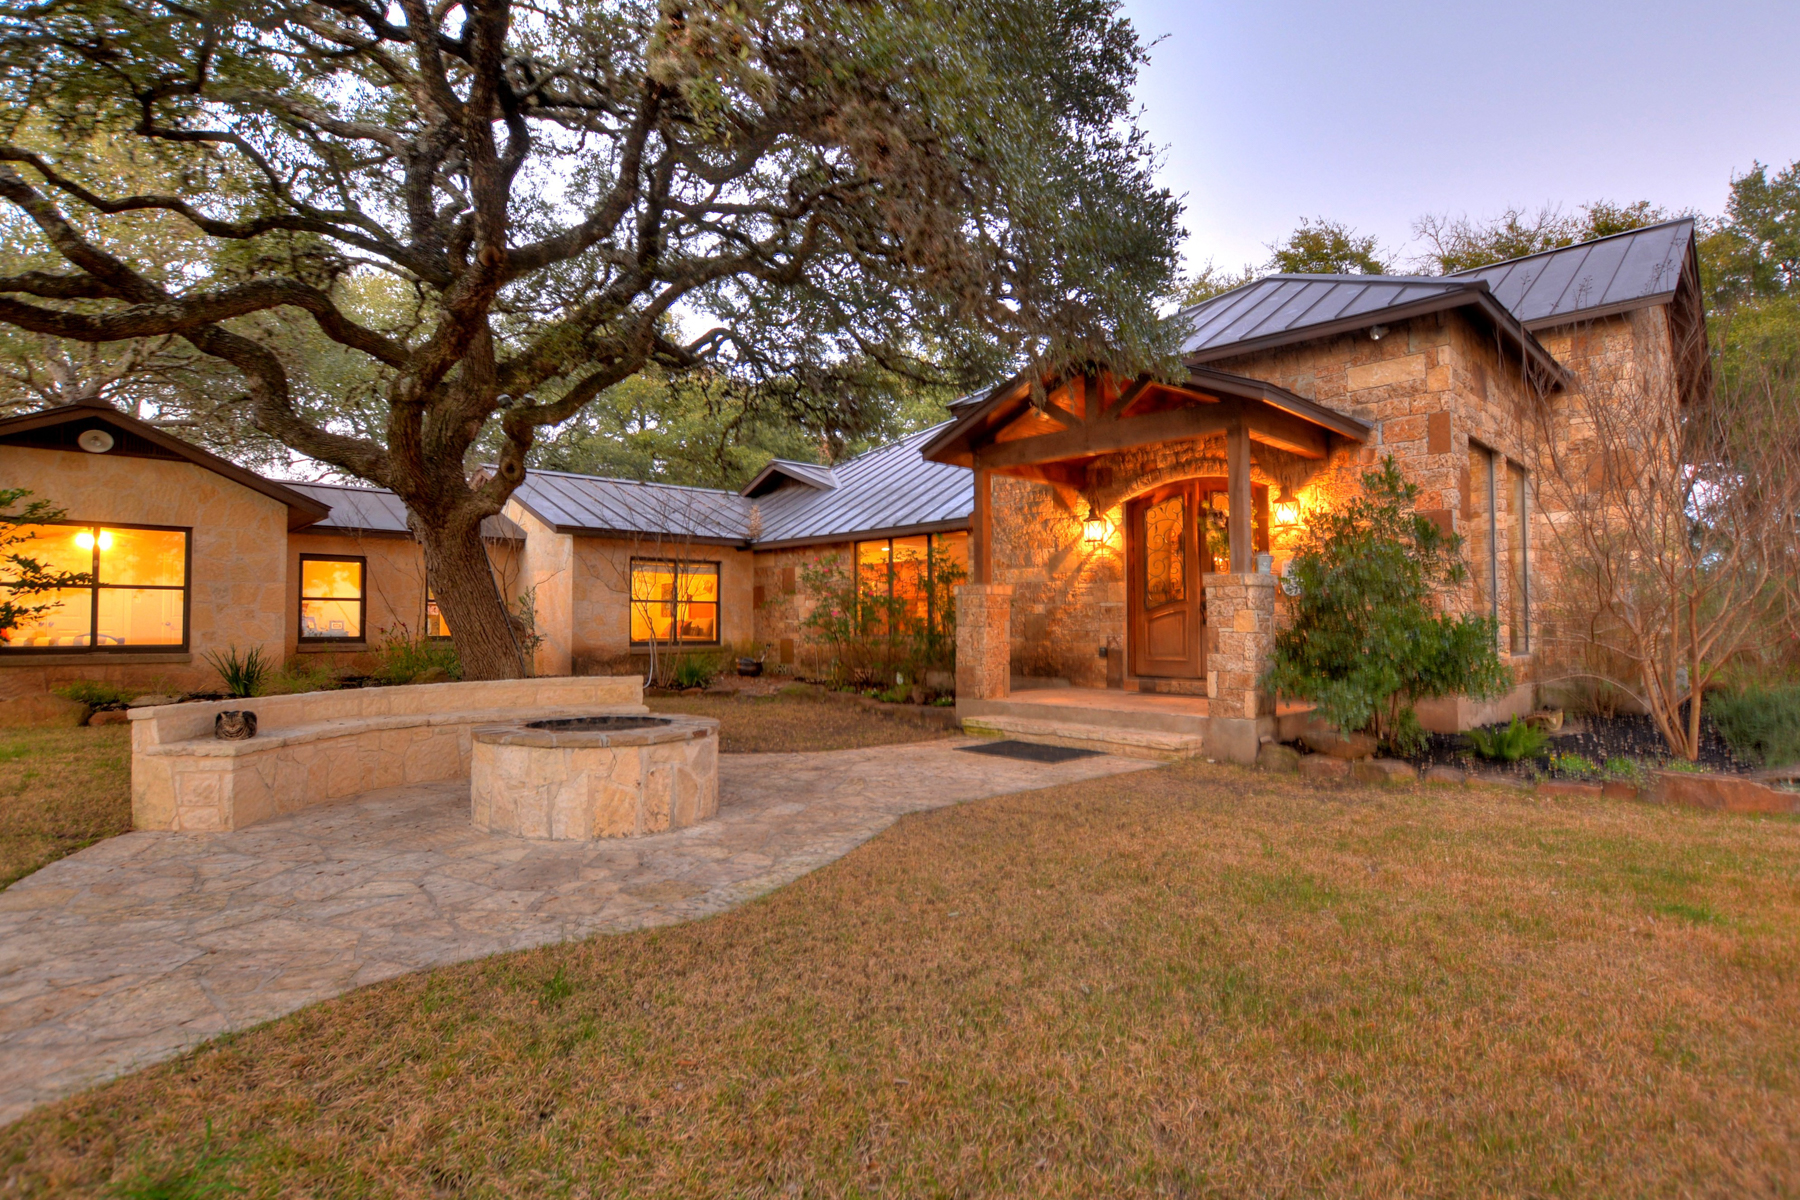 Single Family Home for Sale at Gorgeous Home on 22.9 Acres in Boerne 232 State Highway 46 E Boerne, Texas 78006 United States